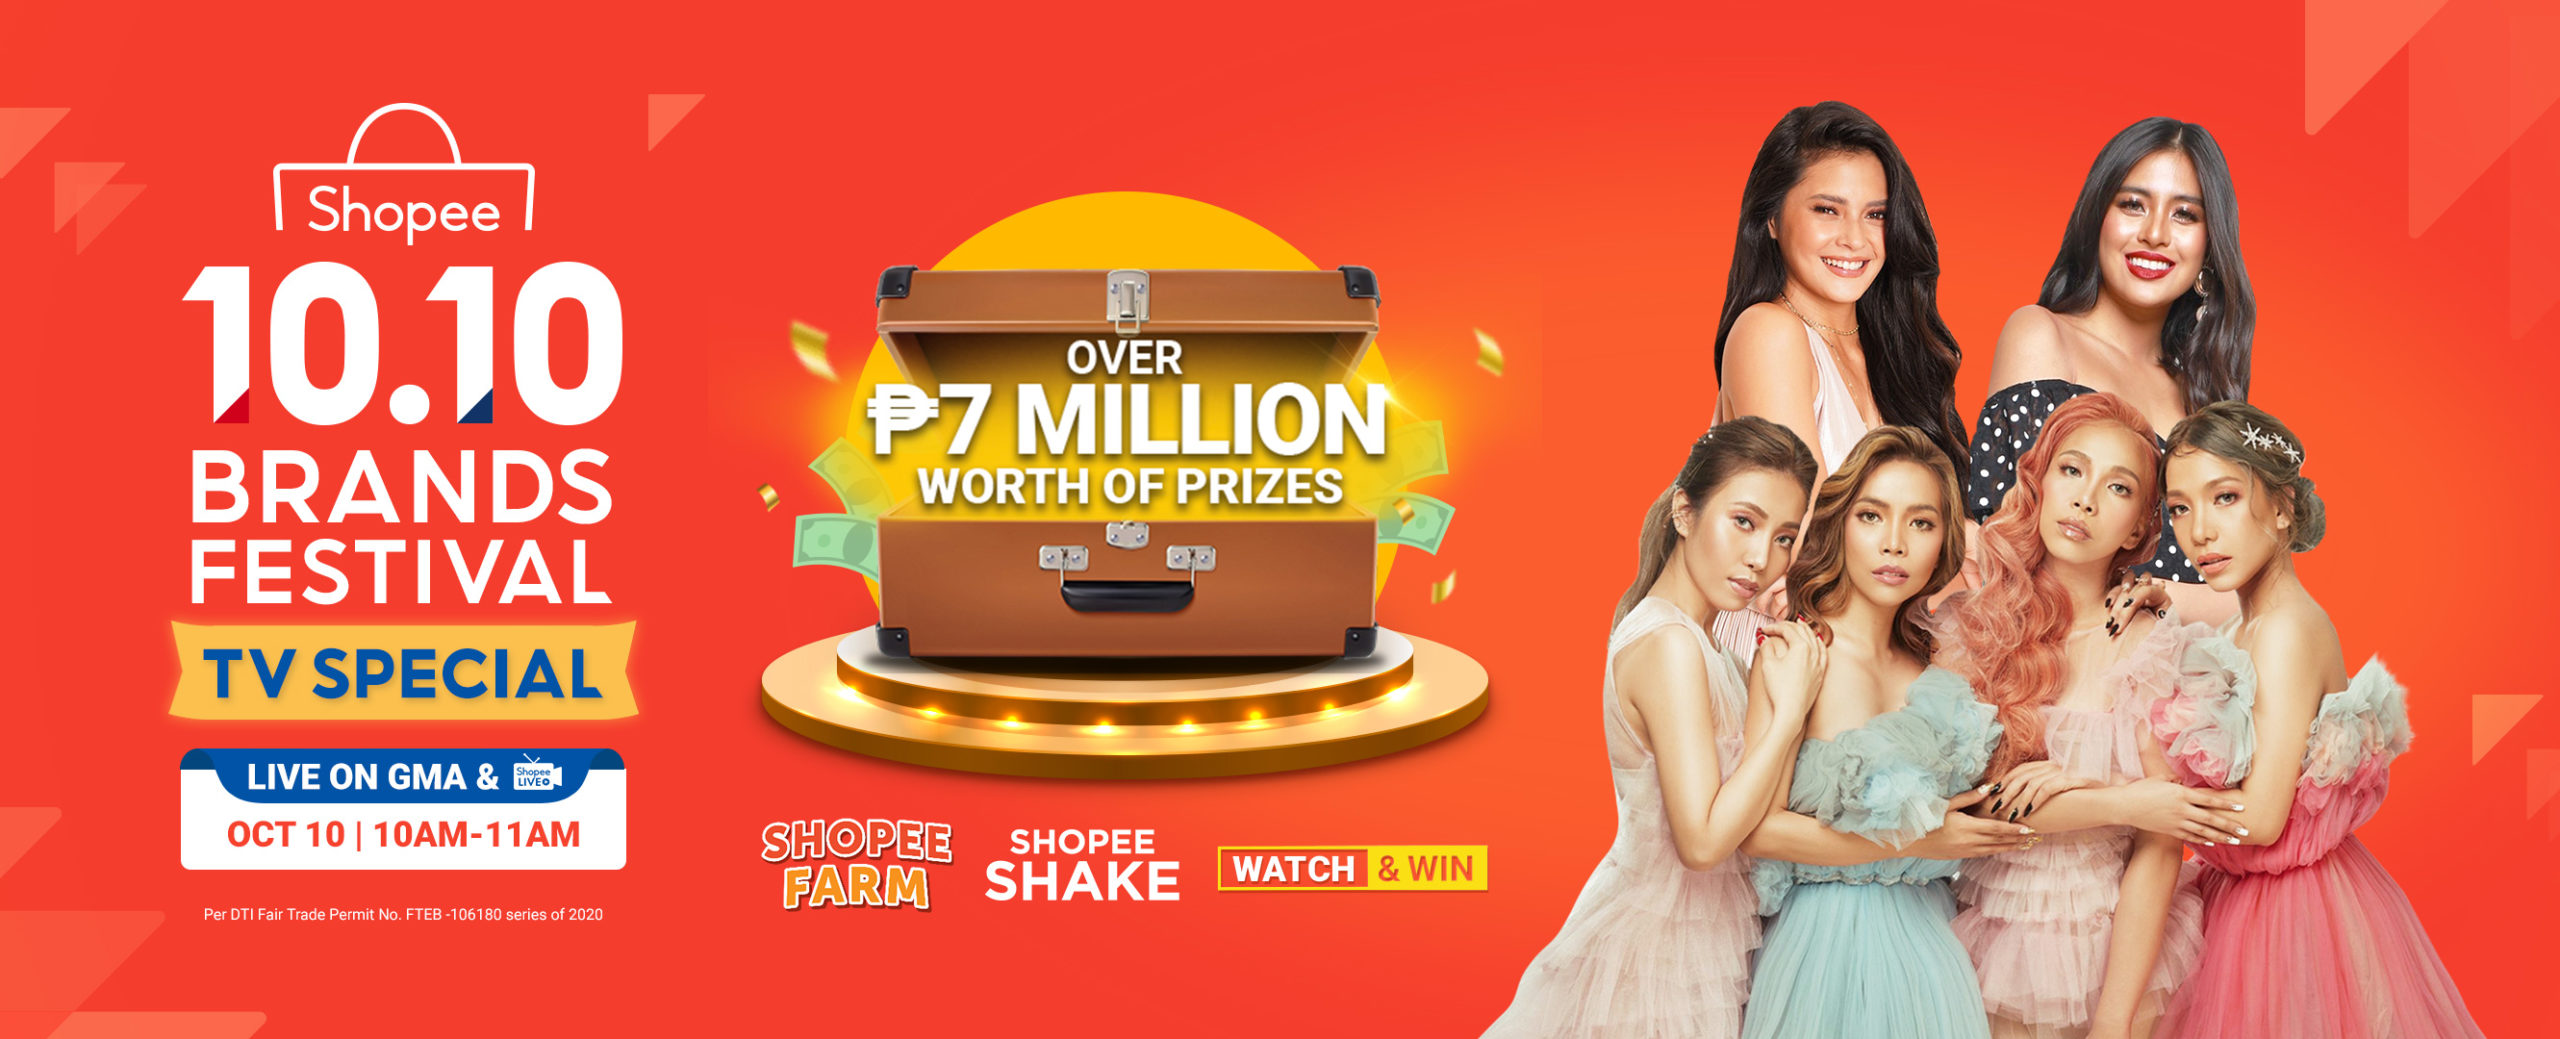 Shopee strengthens supports from brands to reach online customers with 10.10 Brands Festival